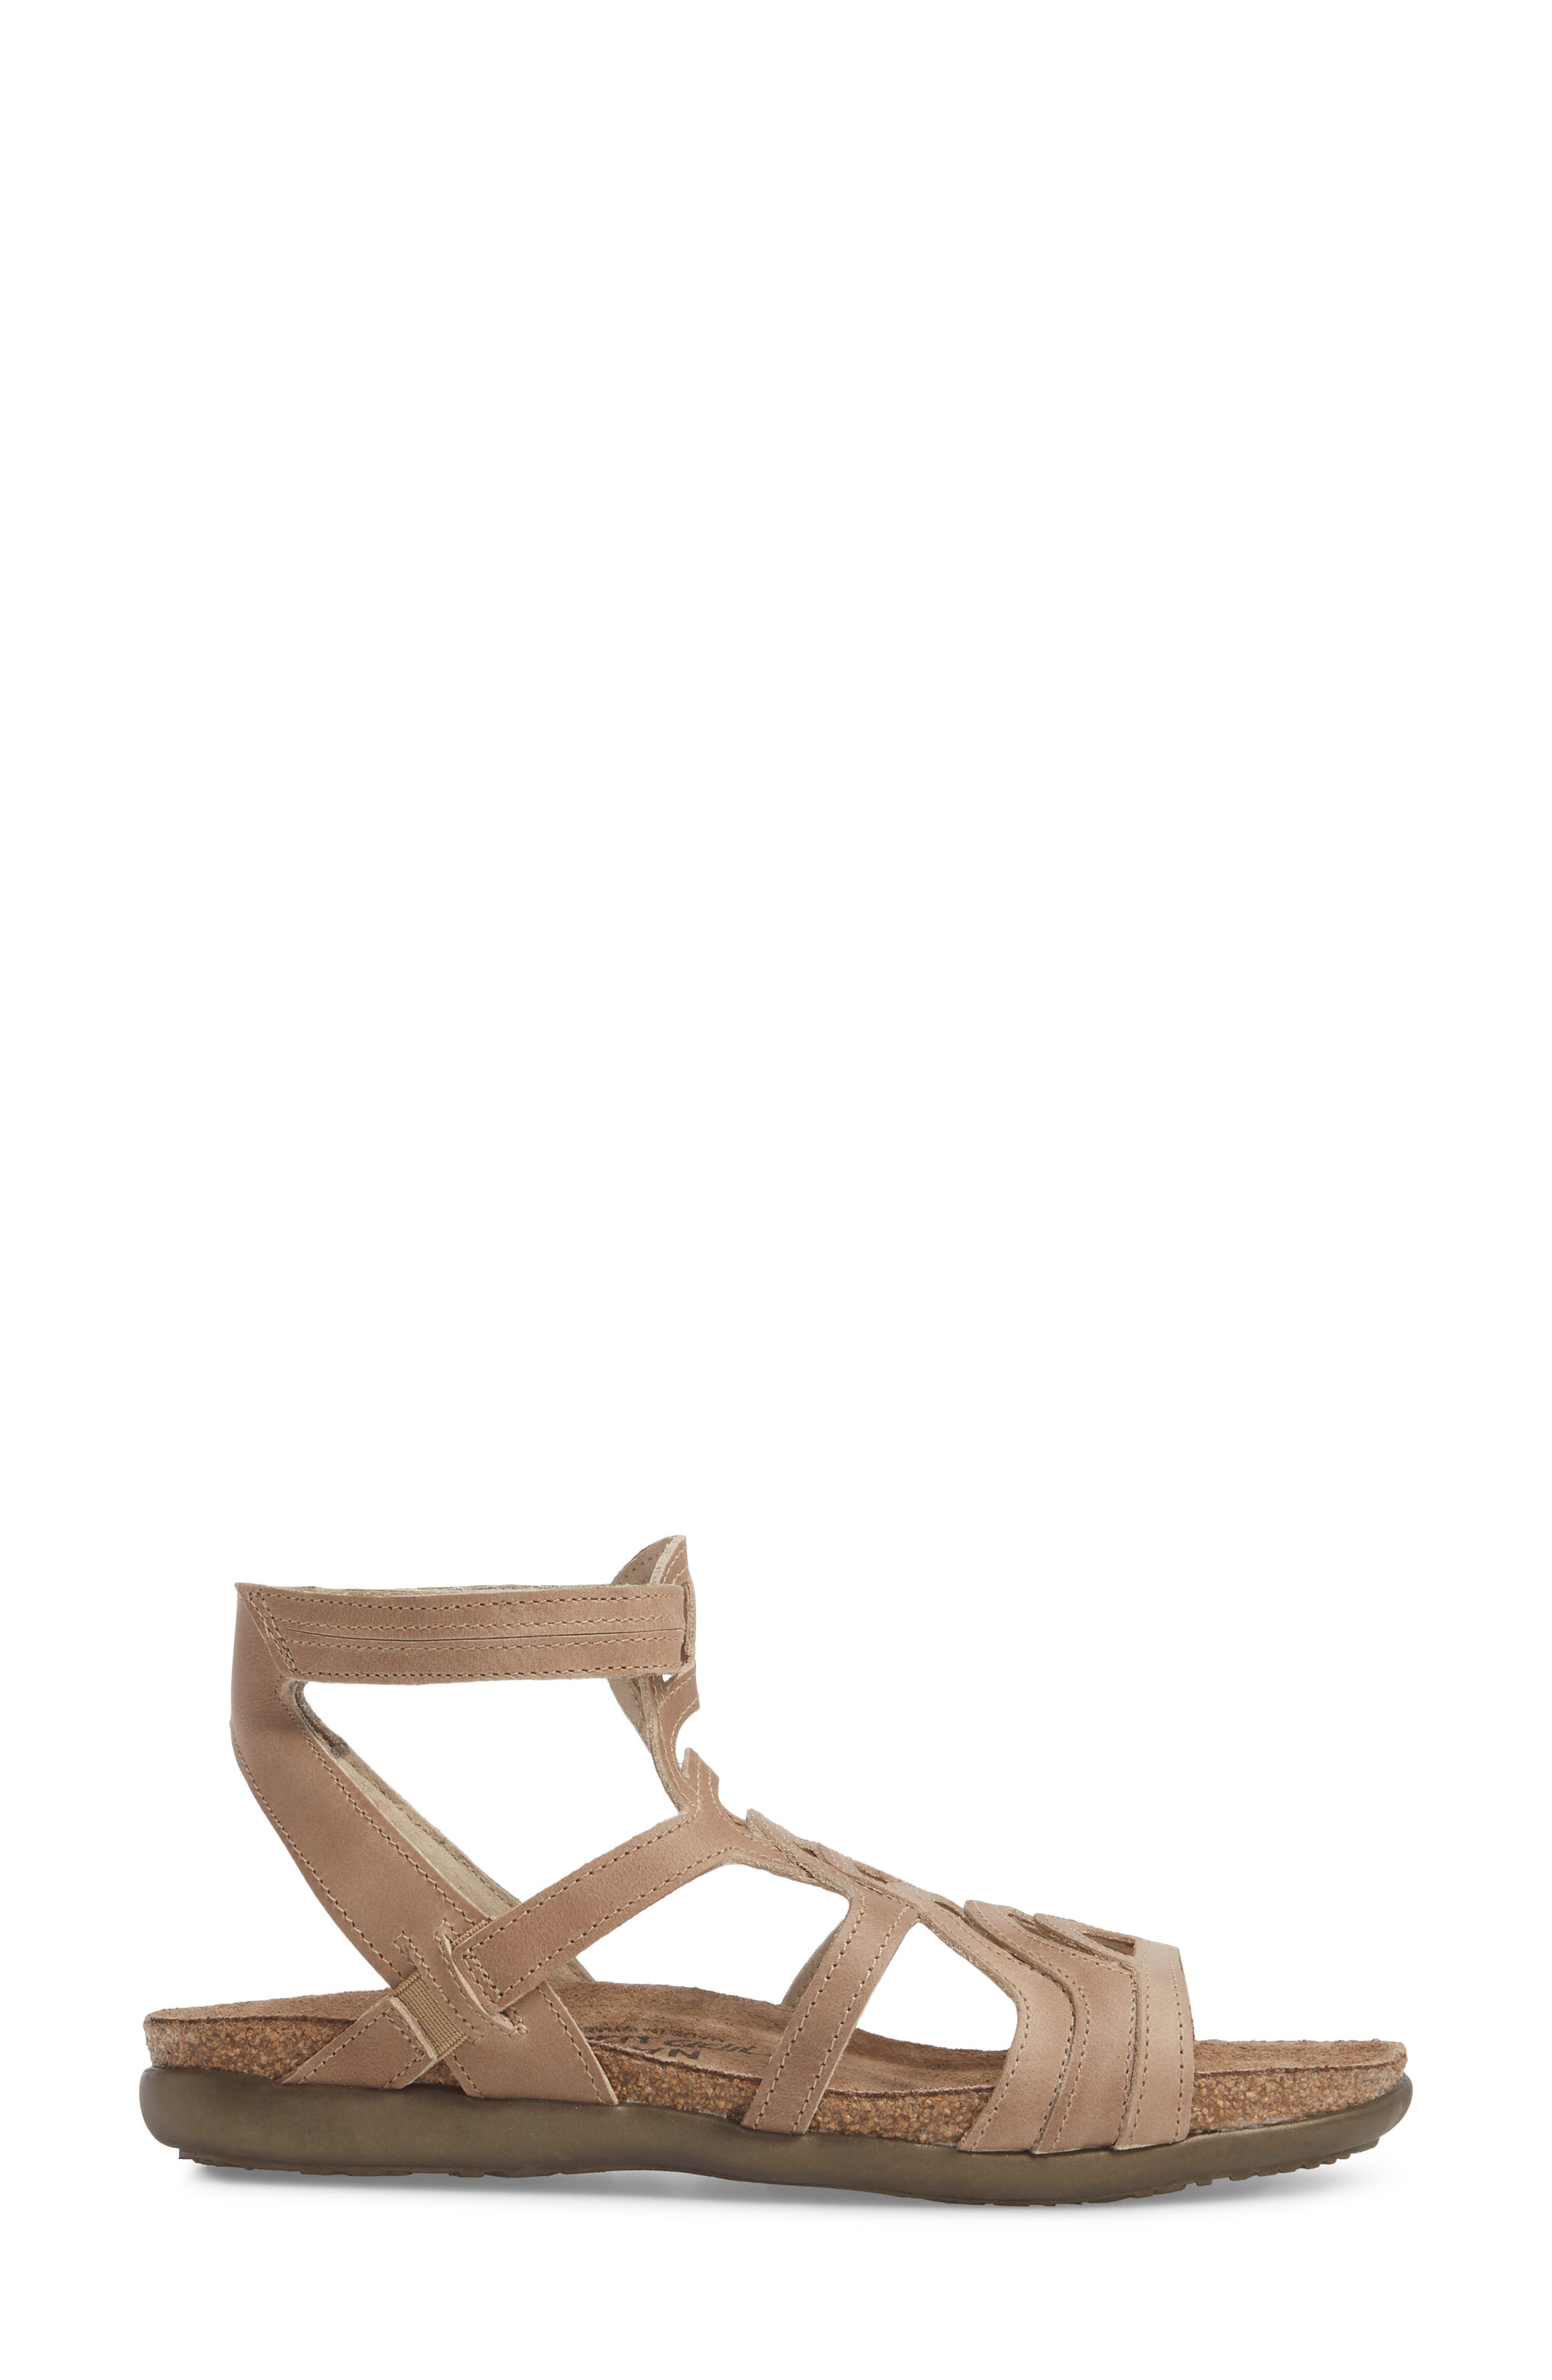 'Sara' Gladiator Sandal,                             Alternate thumbnail 3, color,                             KHAKI BEIGE LEATHER